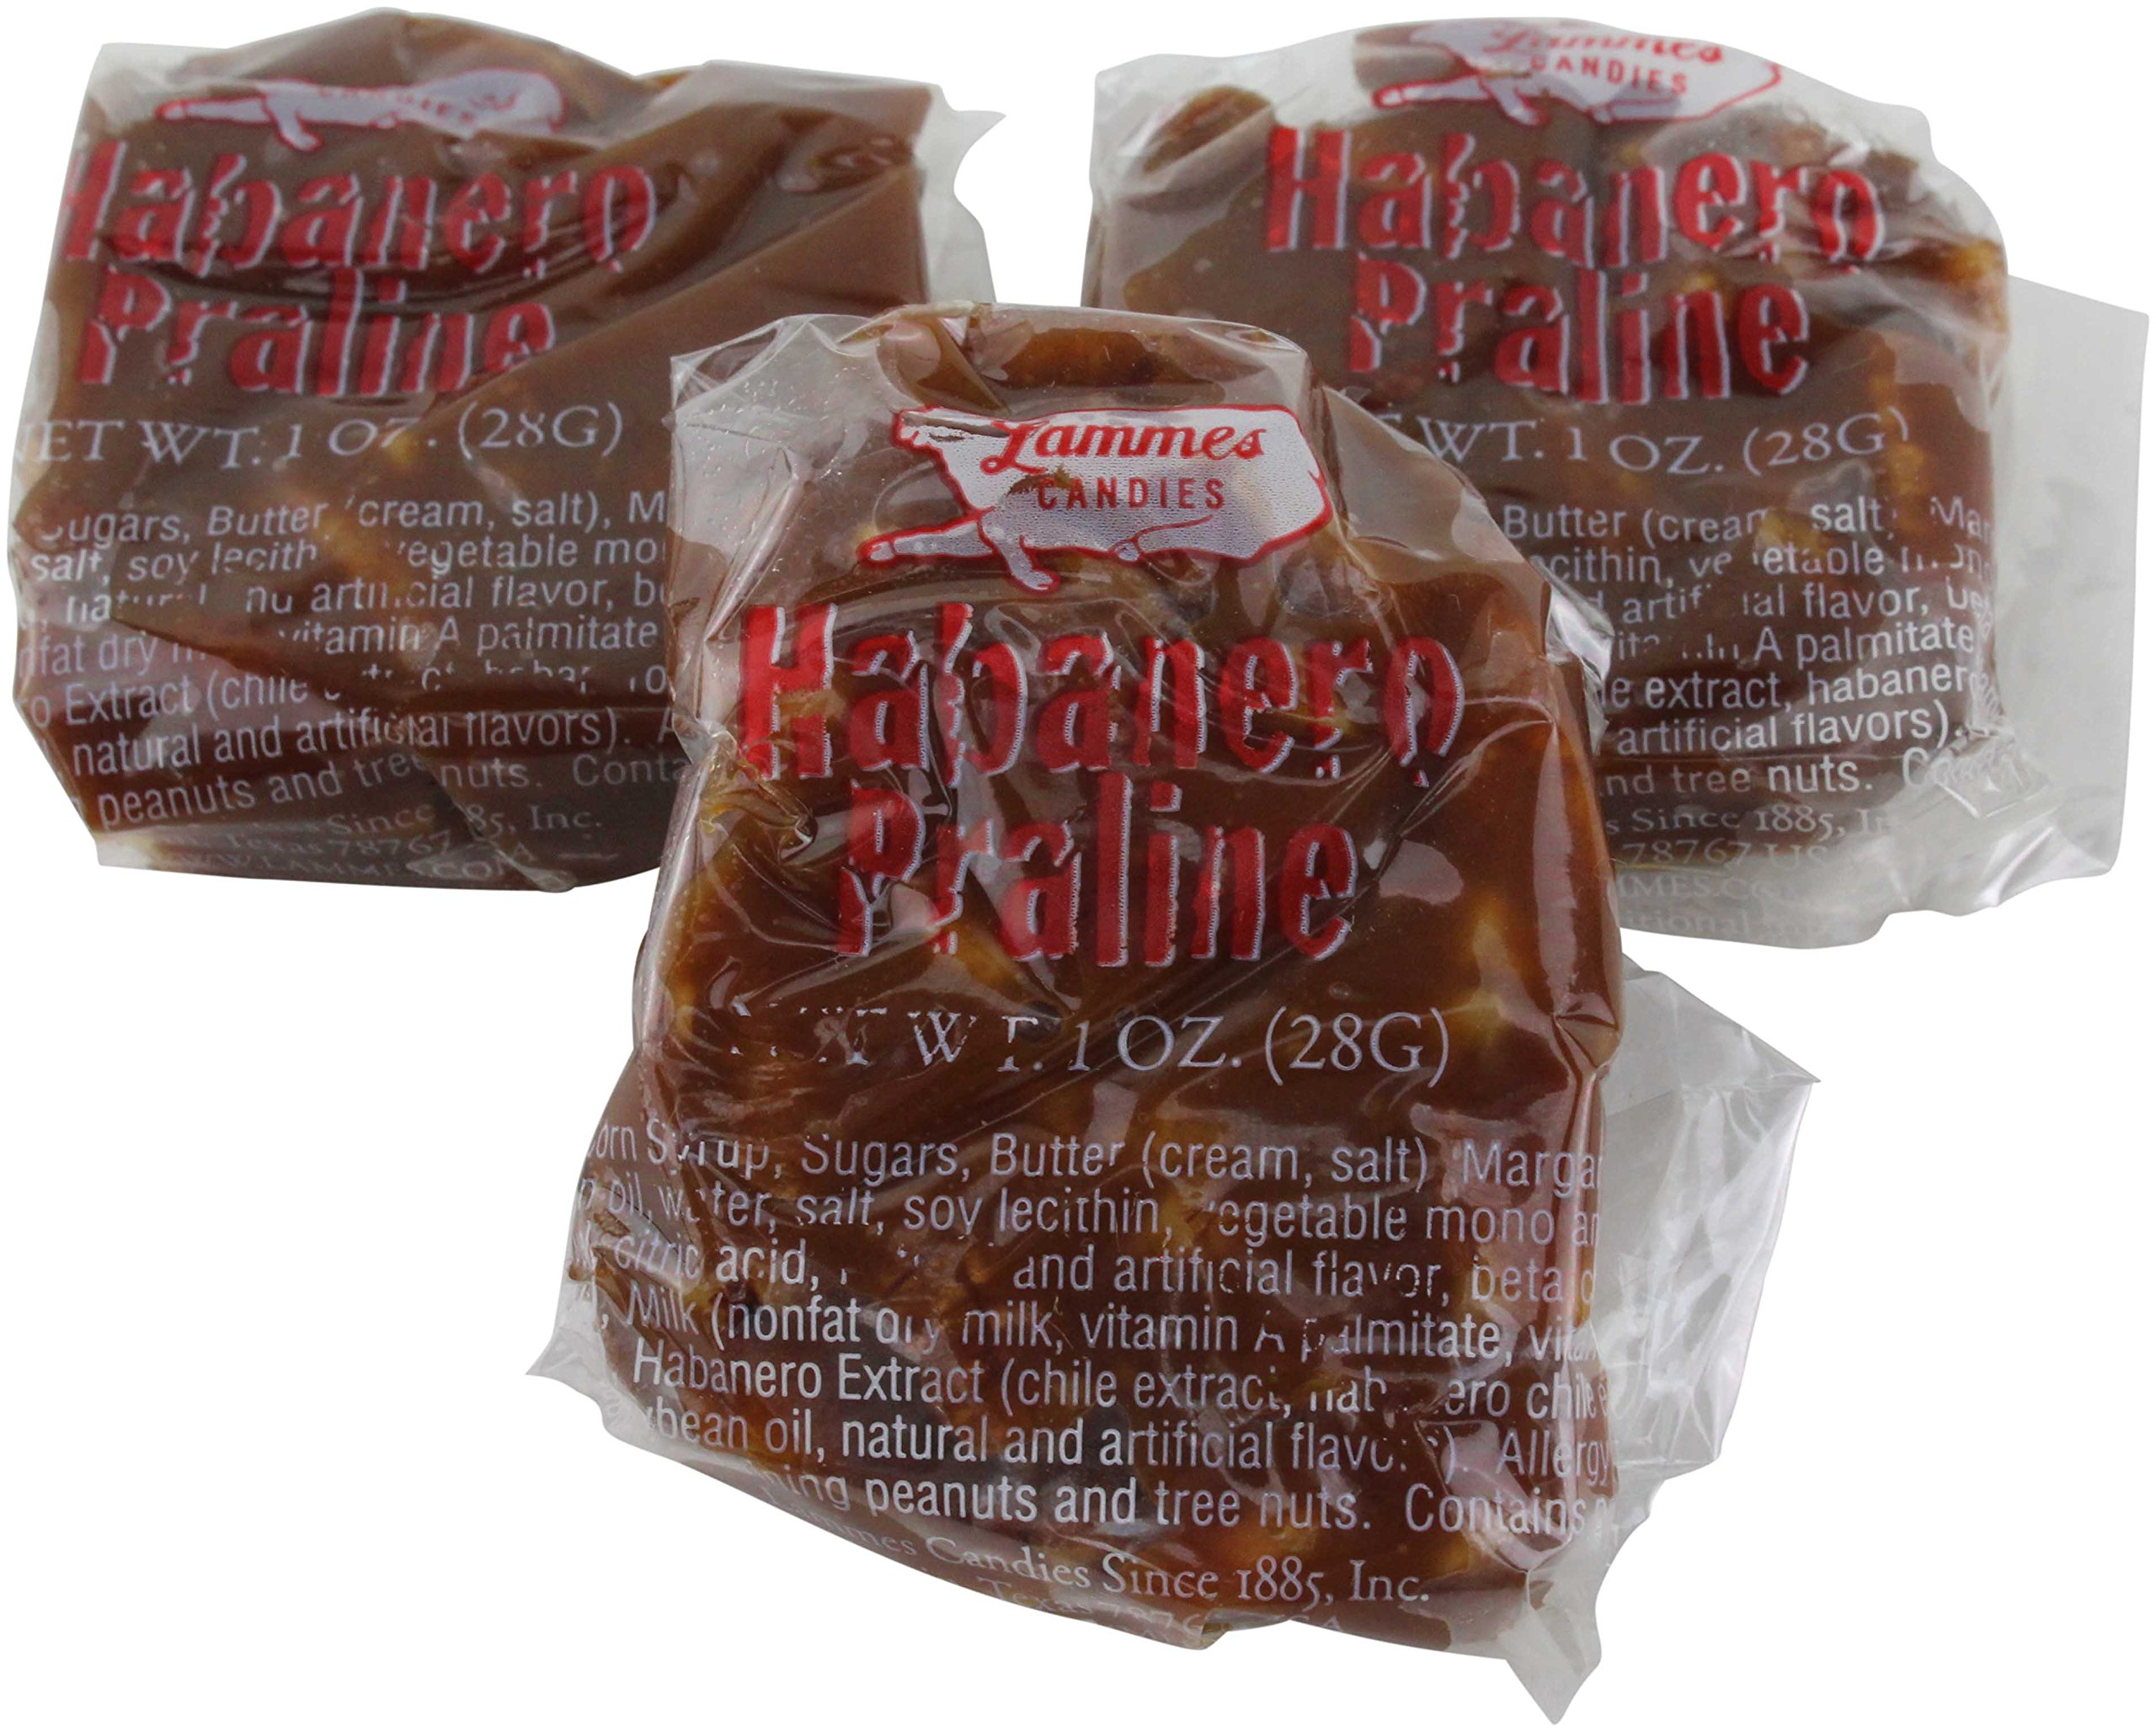 Lammes Candies Texas Chewie Habanero Pecan Pralines in Plain Box, 32 Oz by Lammes Candies